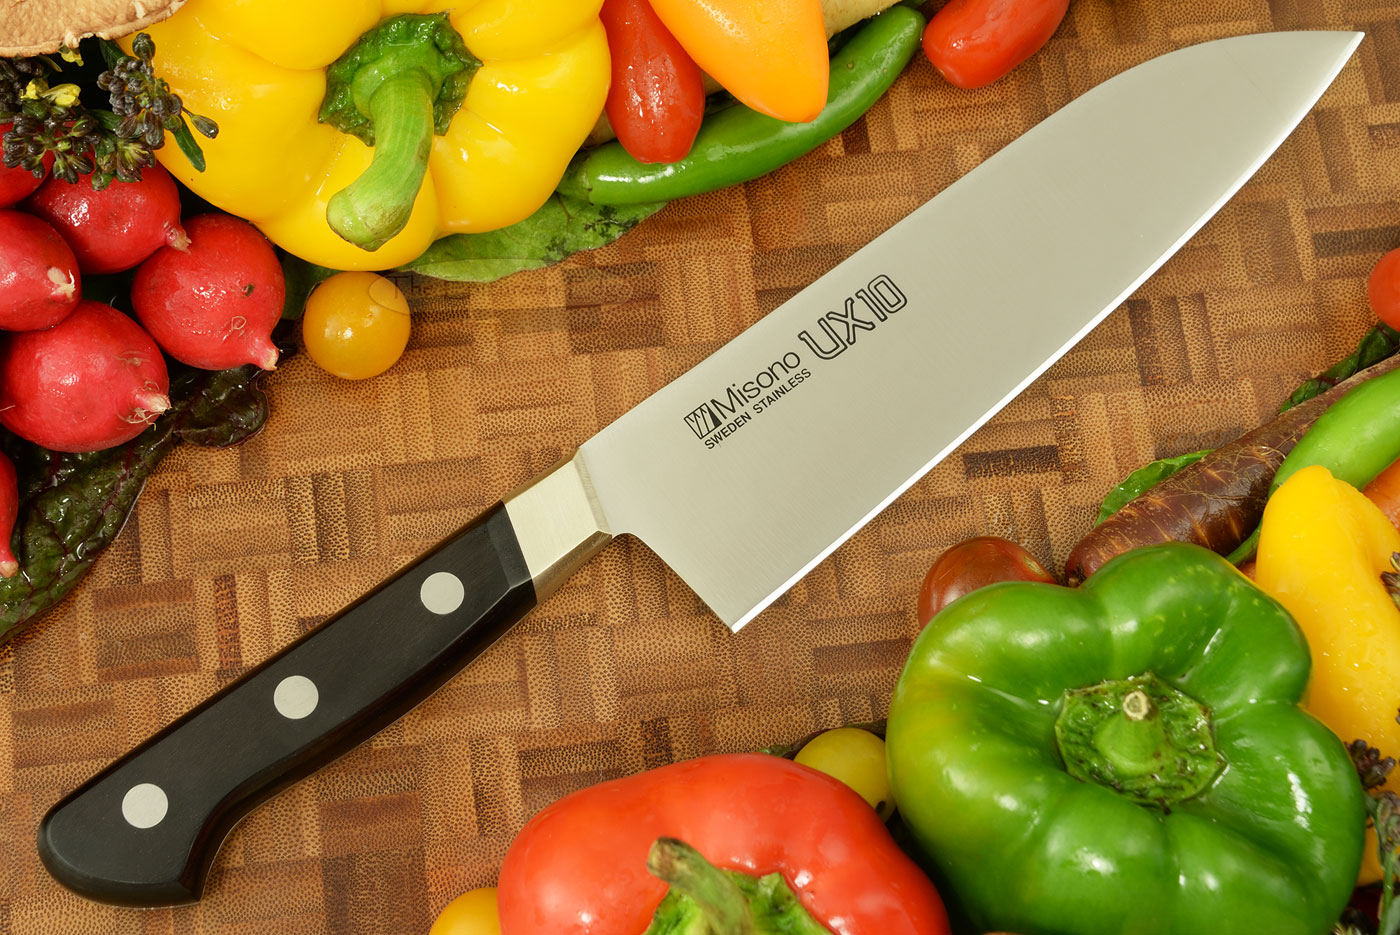 UX10 Chef's Knife - Santoku - 7 1/8 in. (180mm) - No. 711